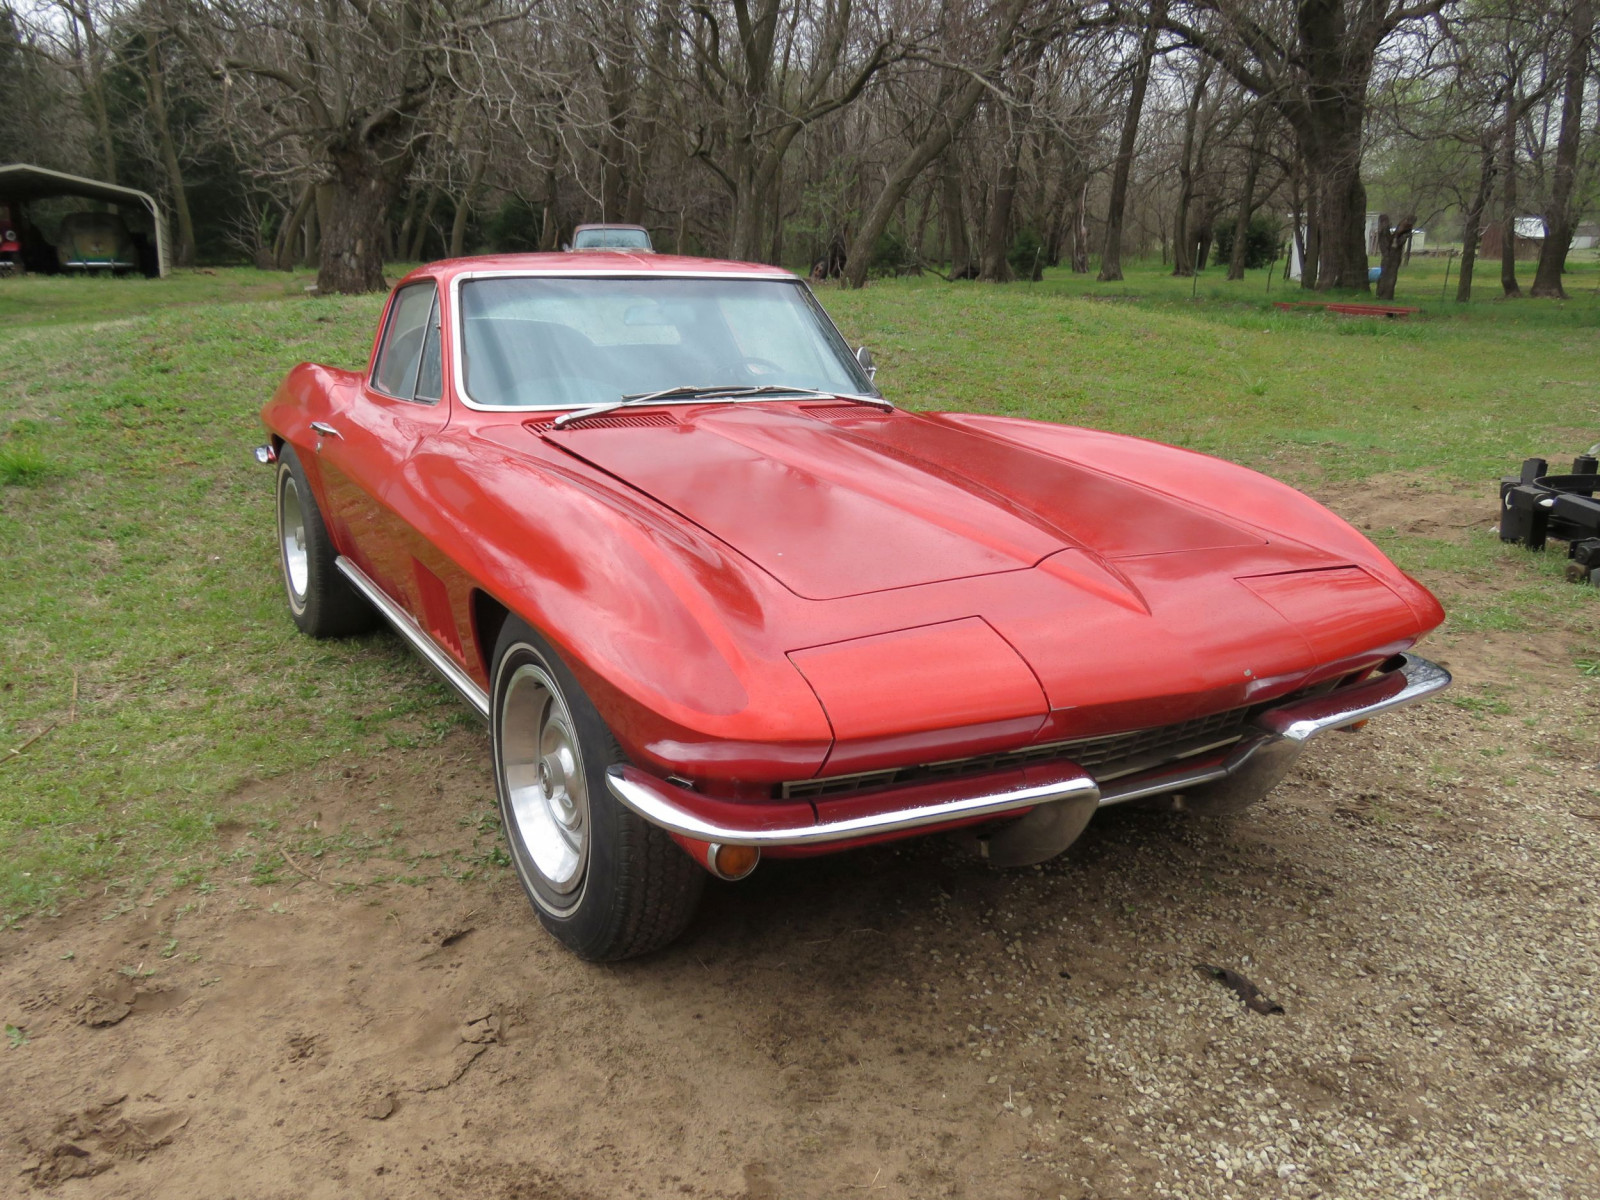 1967 CHEVROLET CORVETTE STINGRAY COUPE - Image 1